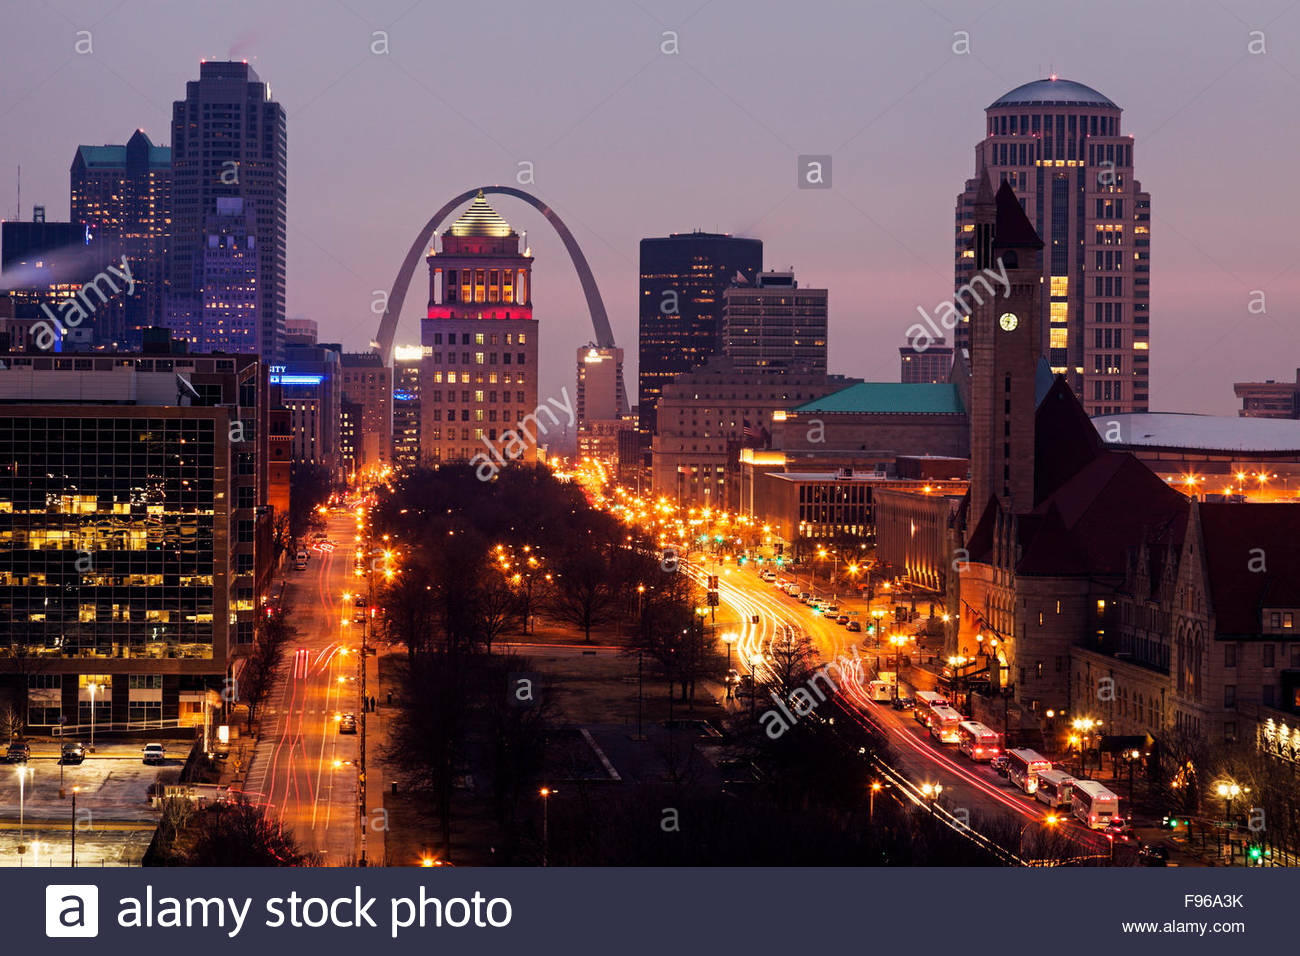 st louis missouri downtown stock photos st louis missouri downtown stock images alamy. Black Bedroom Furniture Sets. Home Design Ideas